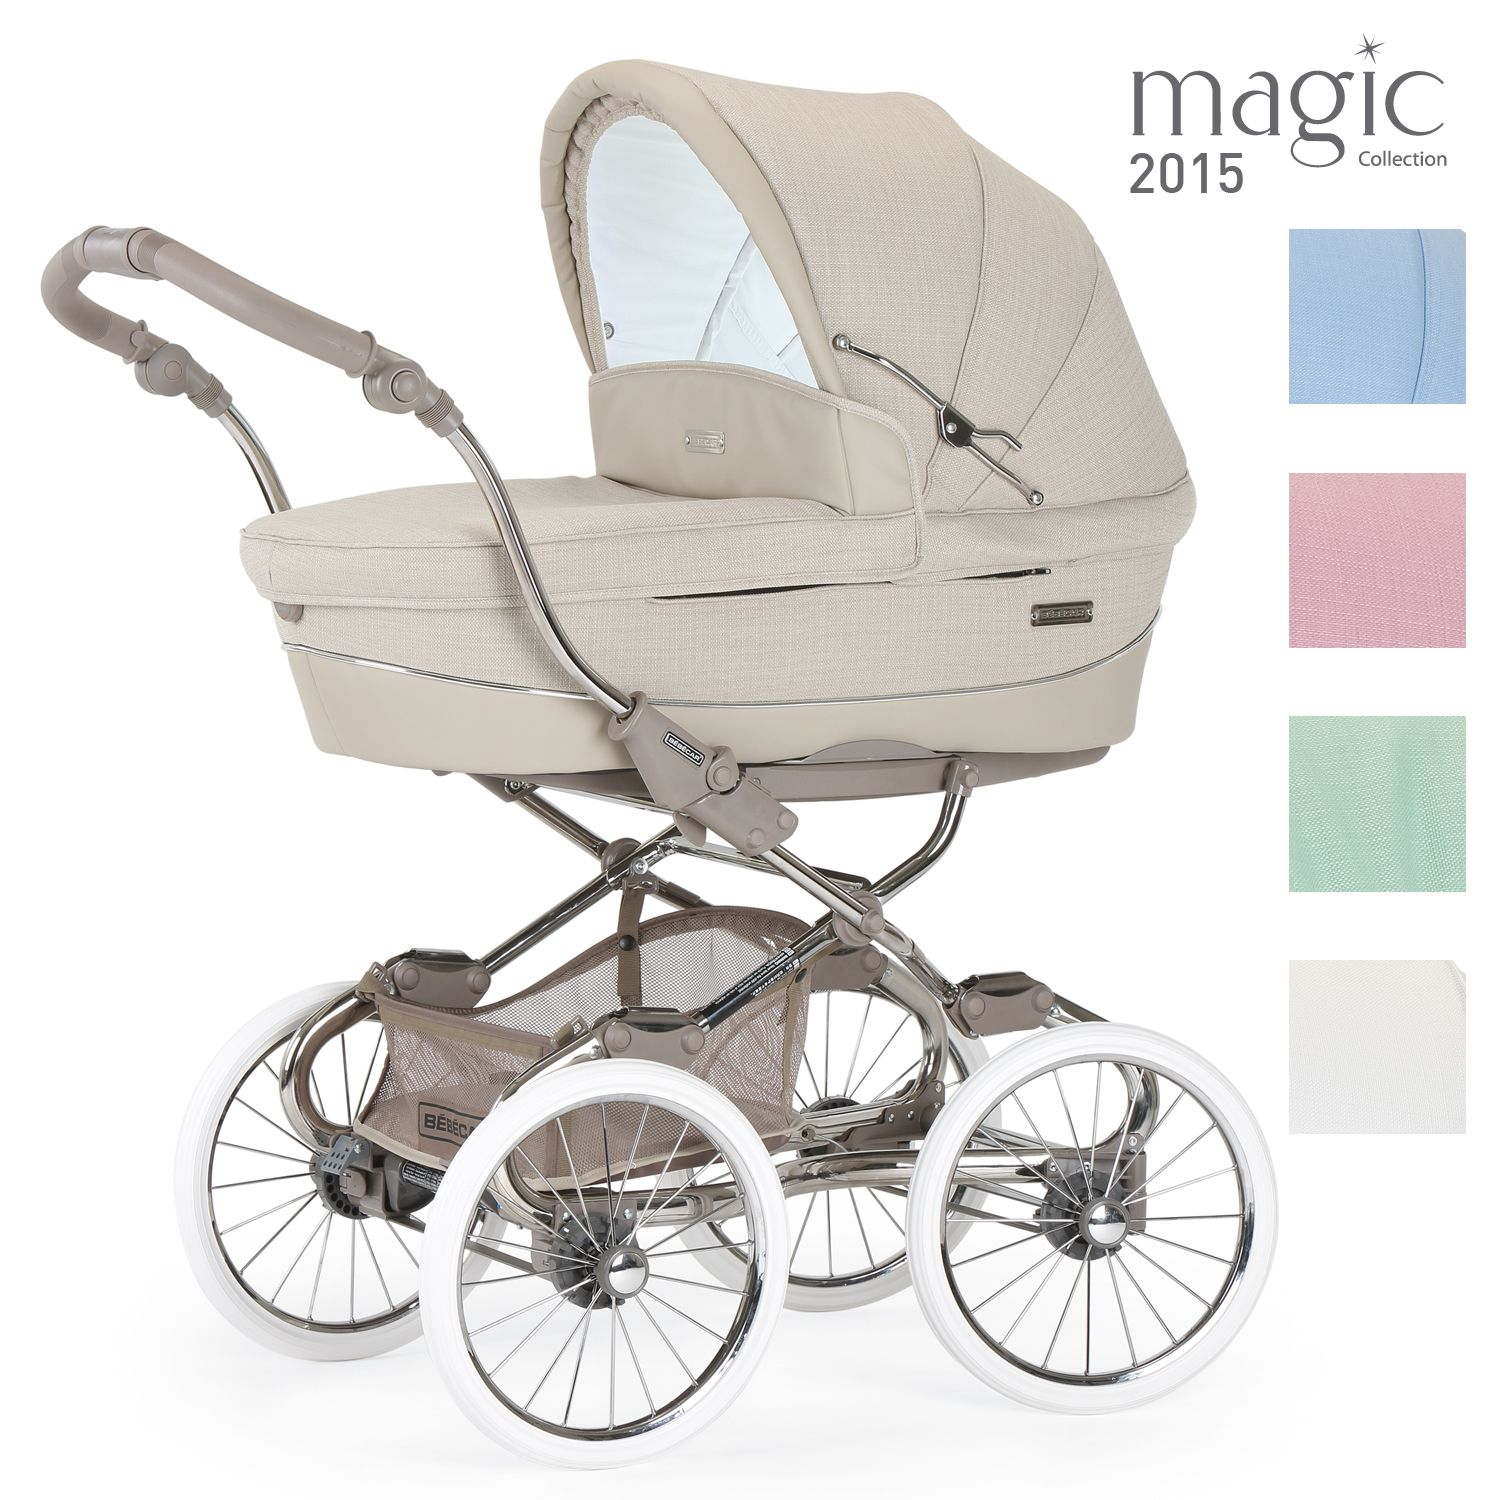 NOVELTY BEAUTIFUL LUXURY PRAM 2IN1 ROAN SOFIA RETRO STYLE 1960s